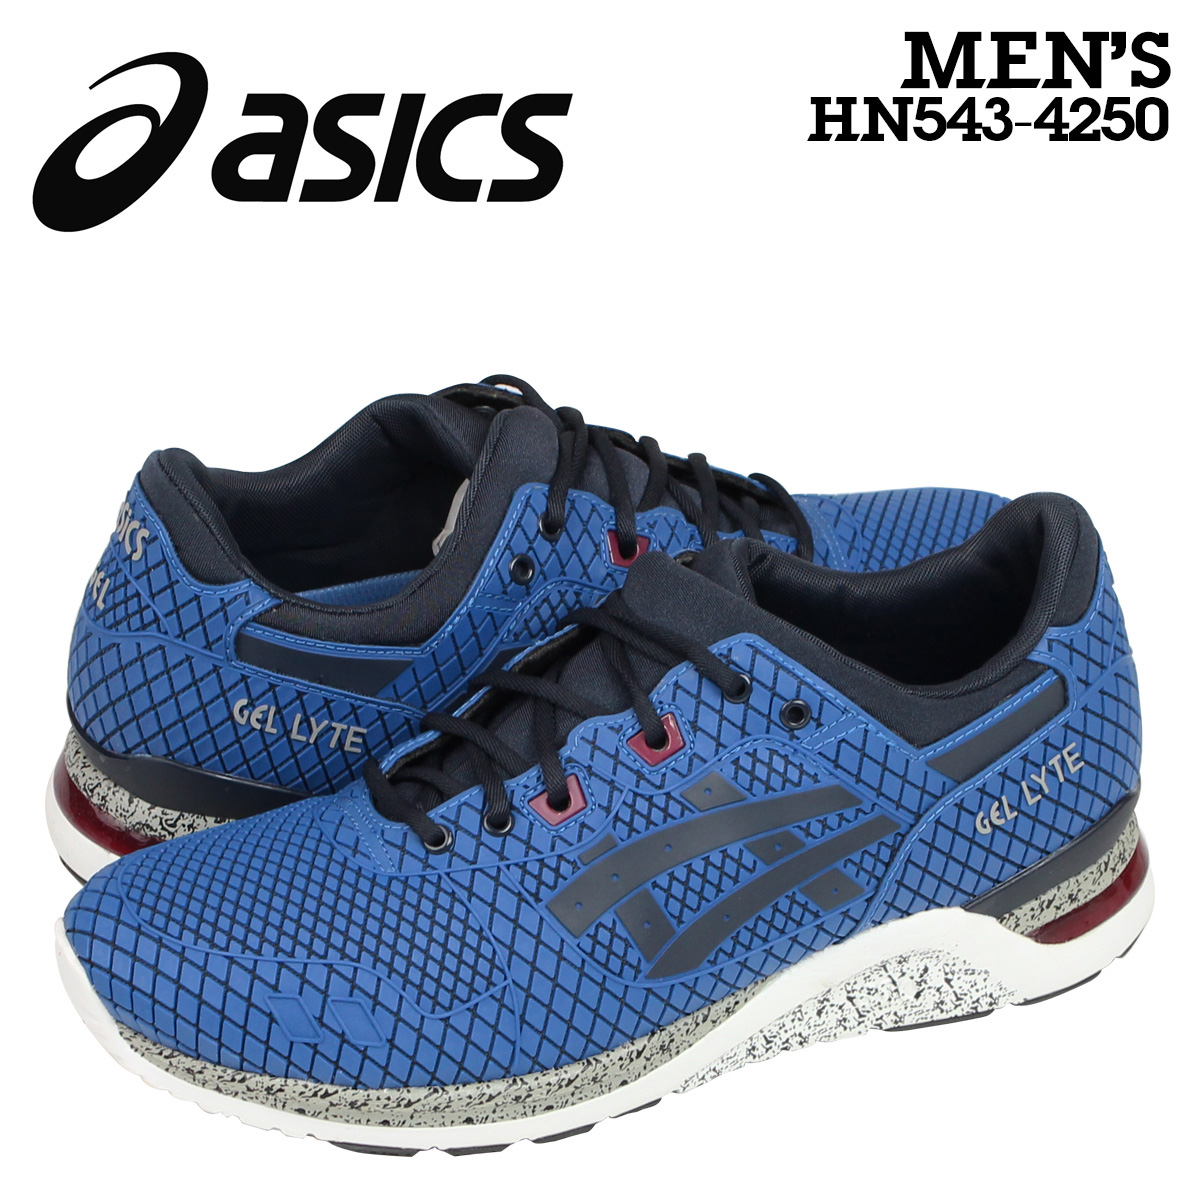 save off 5082c aa23a «Pre-order items» «11 / 4 time will be in stock» ASICs Tiger asics Tiger  men's GEL LYTE EVO SAMURAI ARMOR PACK sneakers differeces Evo Samurai armor  ...